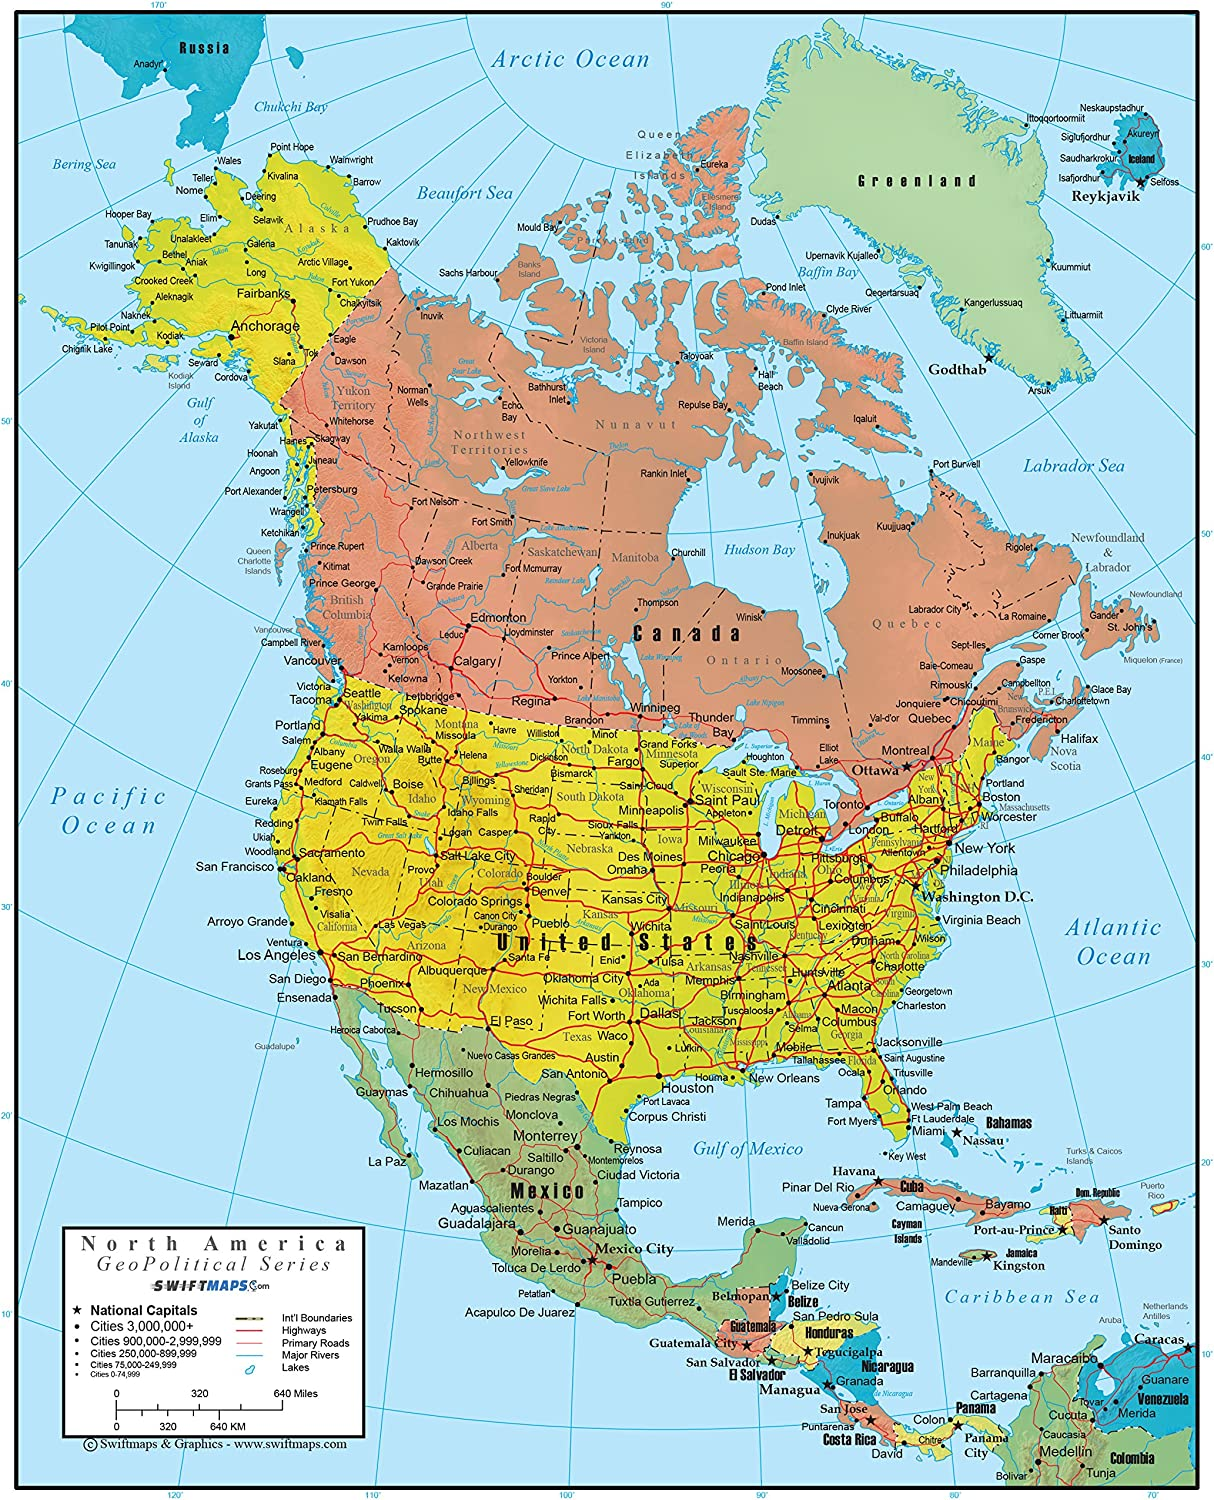 36x44 Laminated Swiftmaps North America Wall Map GeoPolitical Edition by